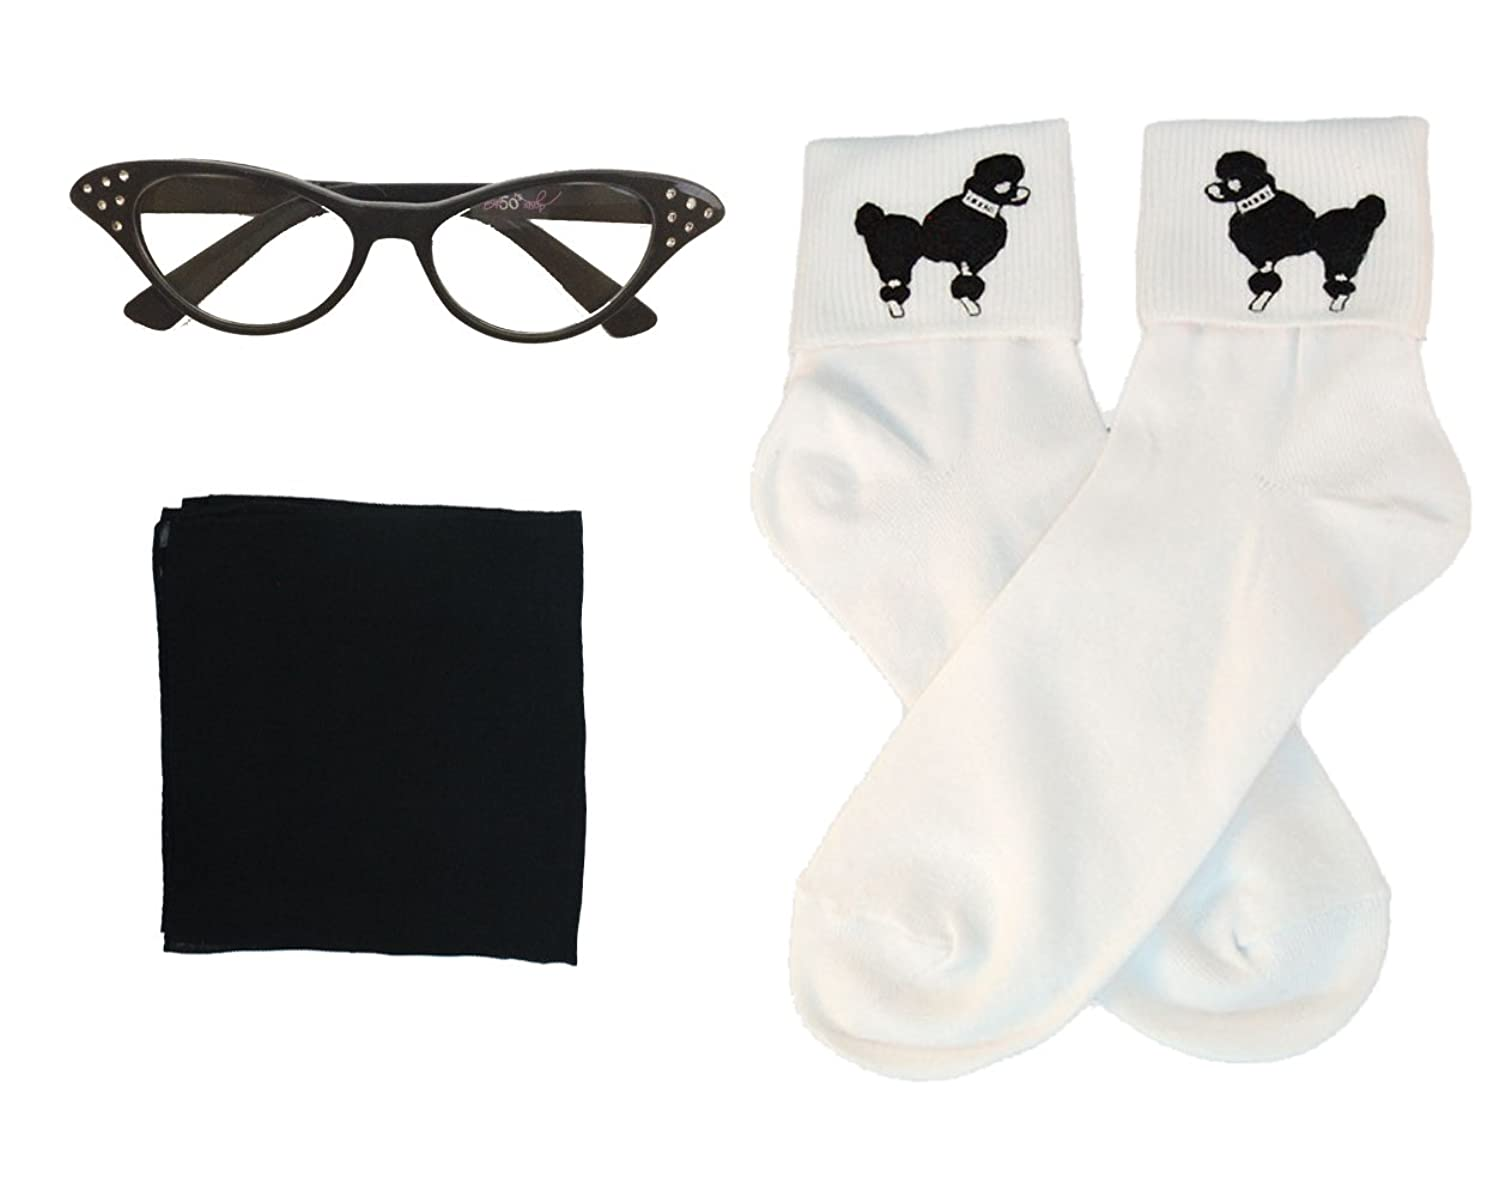 628326e5872 Our 1950s vintage style 3 piece accessory kit comes with a comfortable and  light pair of adult Cat Eye Glasses